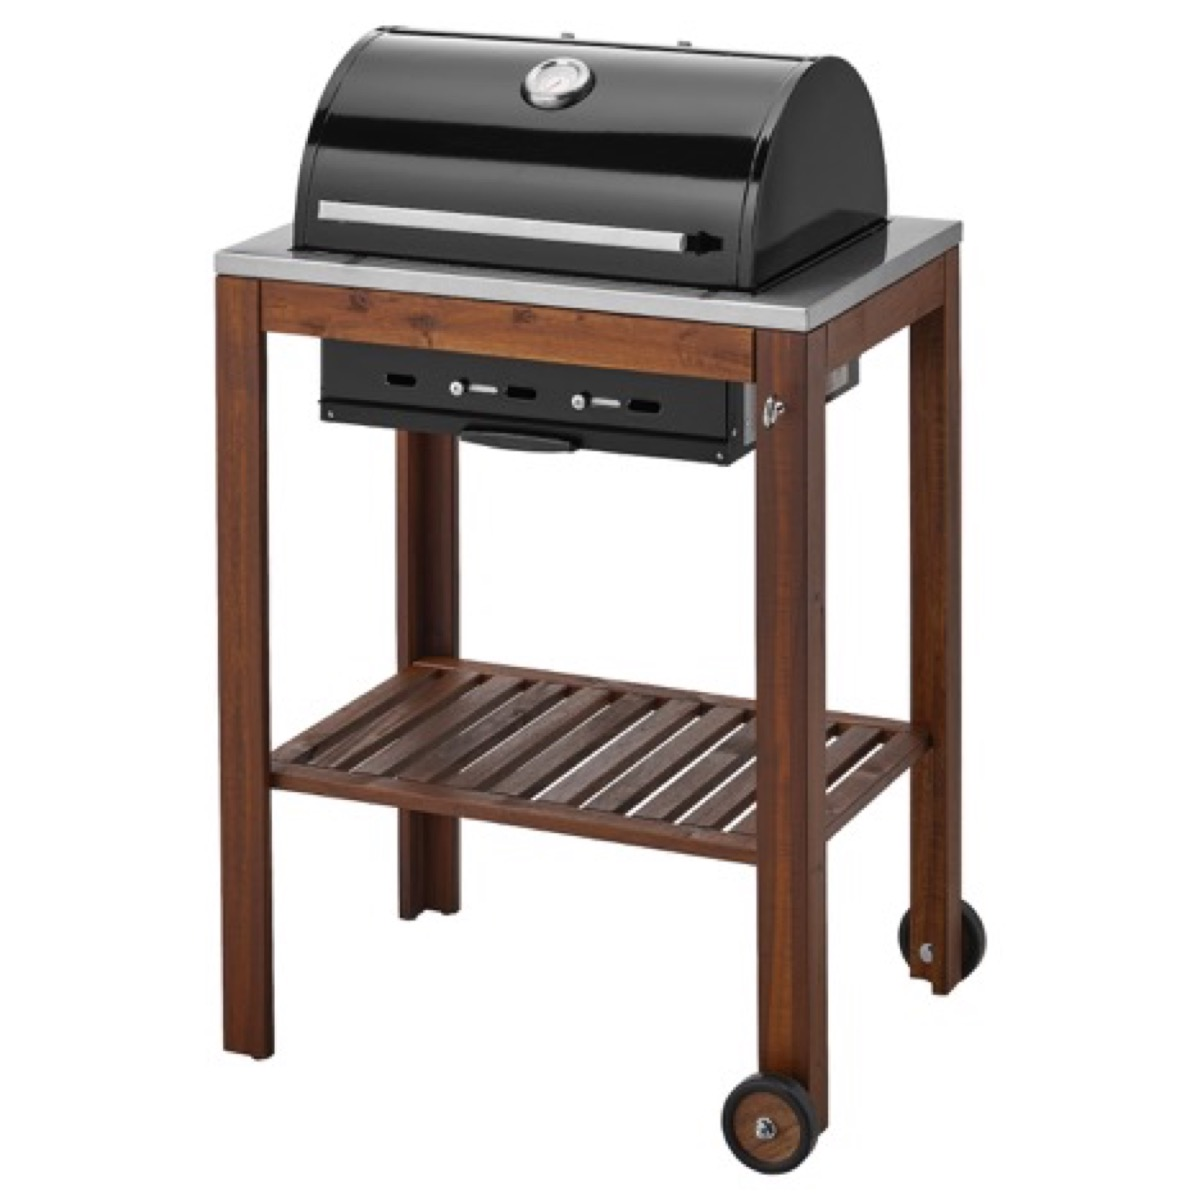 Ikea grill with wooden surround